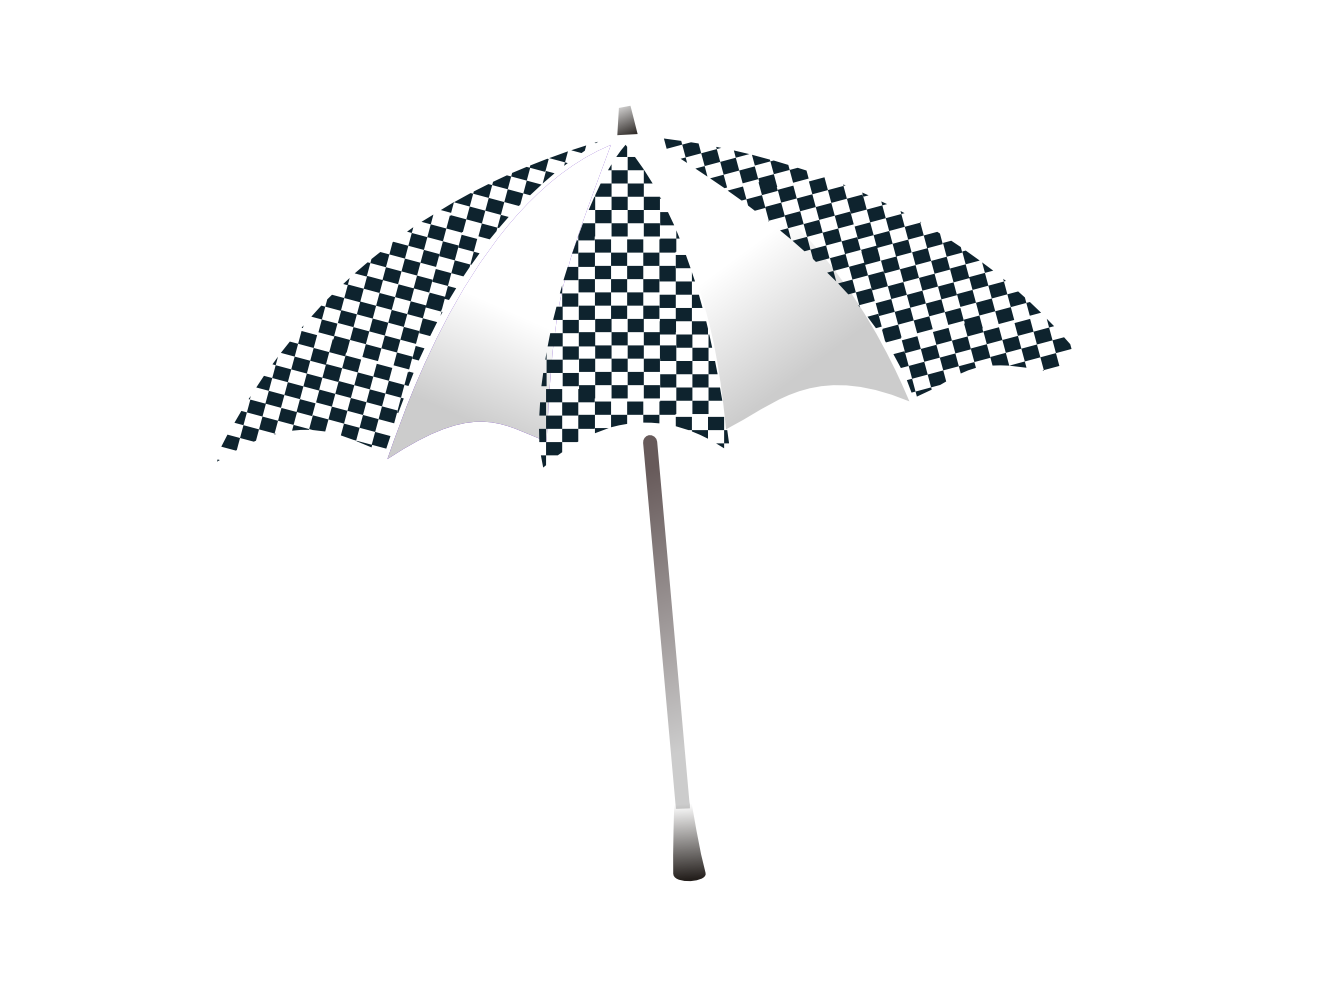 Umbrella Clipart Black And White umbrella 20clipart 20black